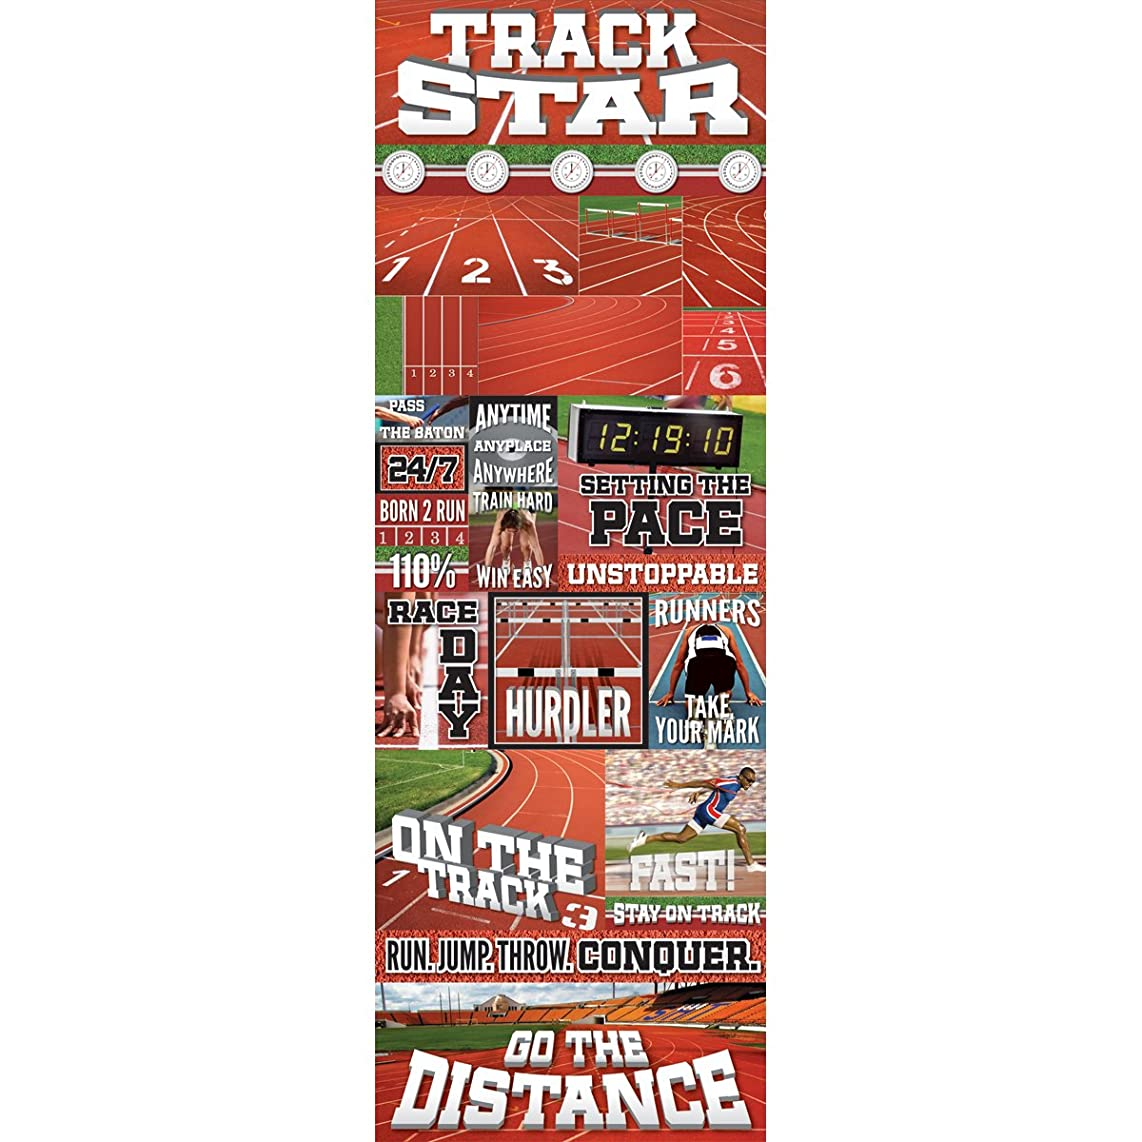 Colonial Needle RS-CSTK-179 Real Sport Die-Cut Cardstock Stickers, 4.25 by 13-Inch, Track Graphic